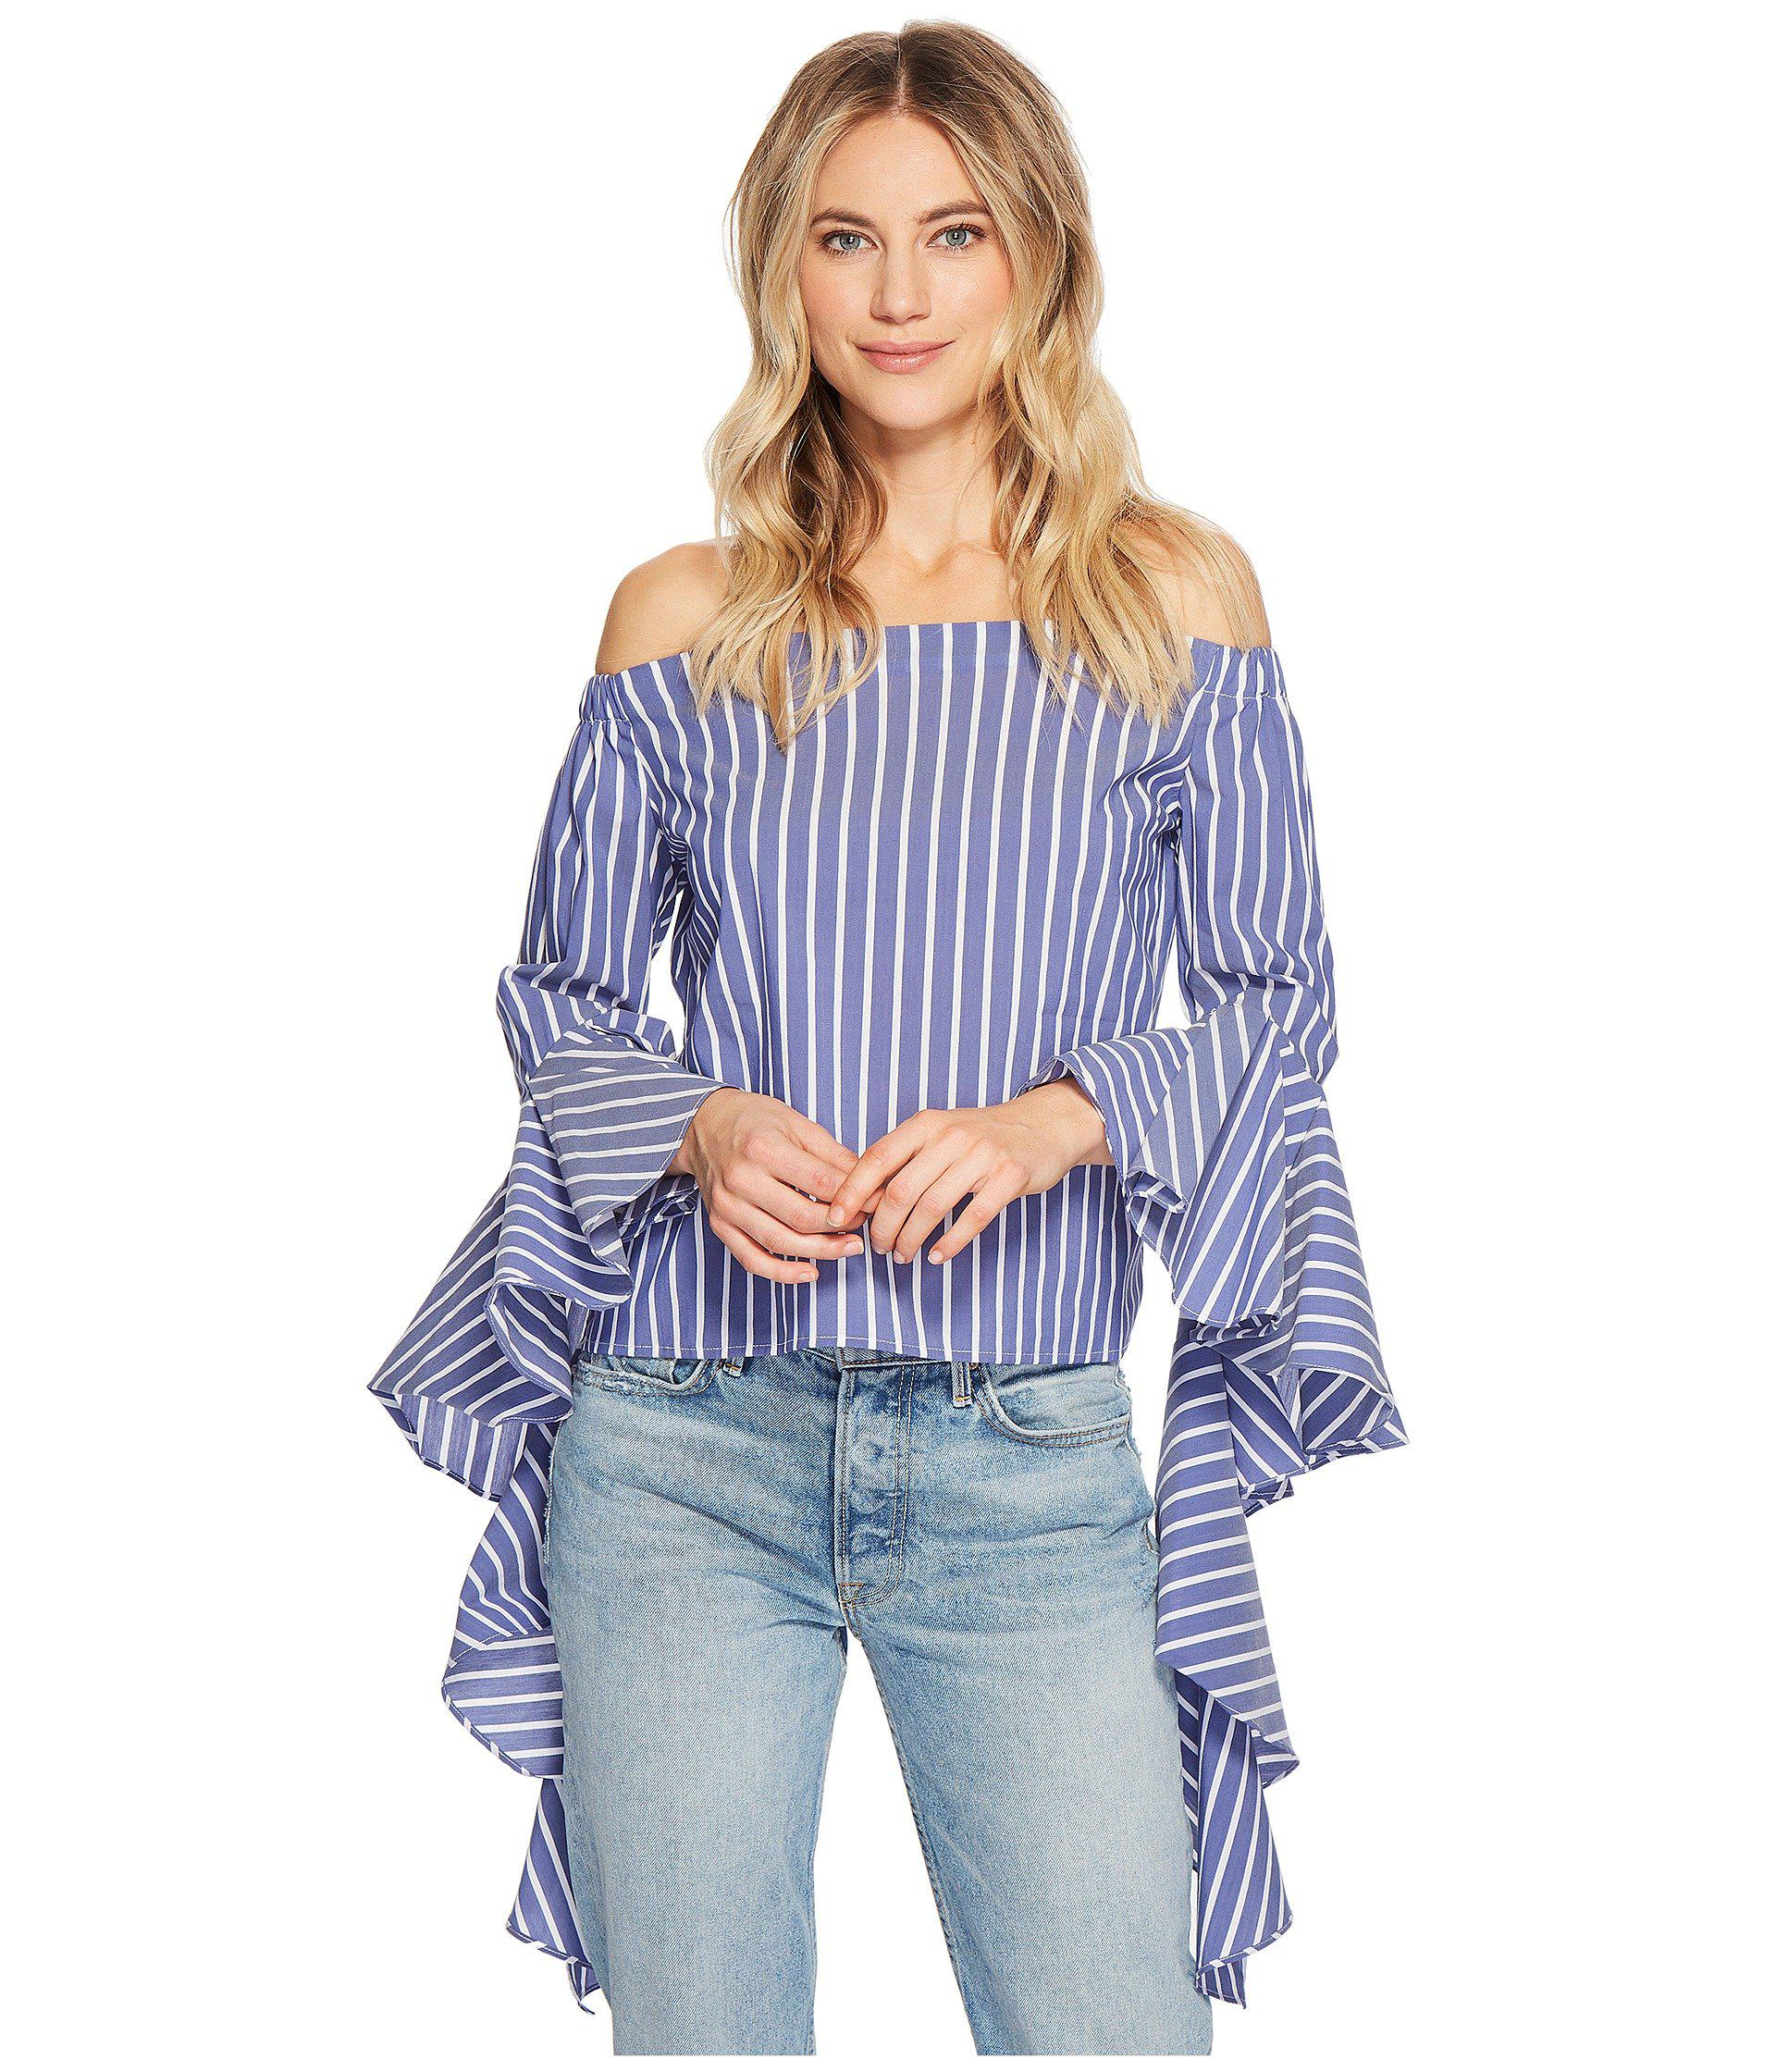 ec0a82d2e03a8 Lyst - Bishop + Young Gigi Sleeve Detail Top in Blue - Save 13%